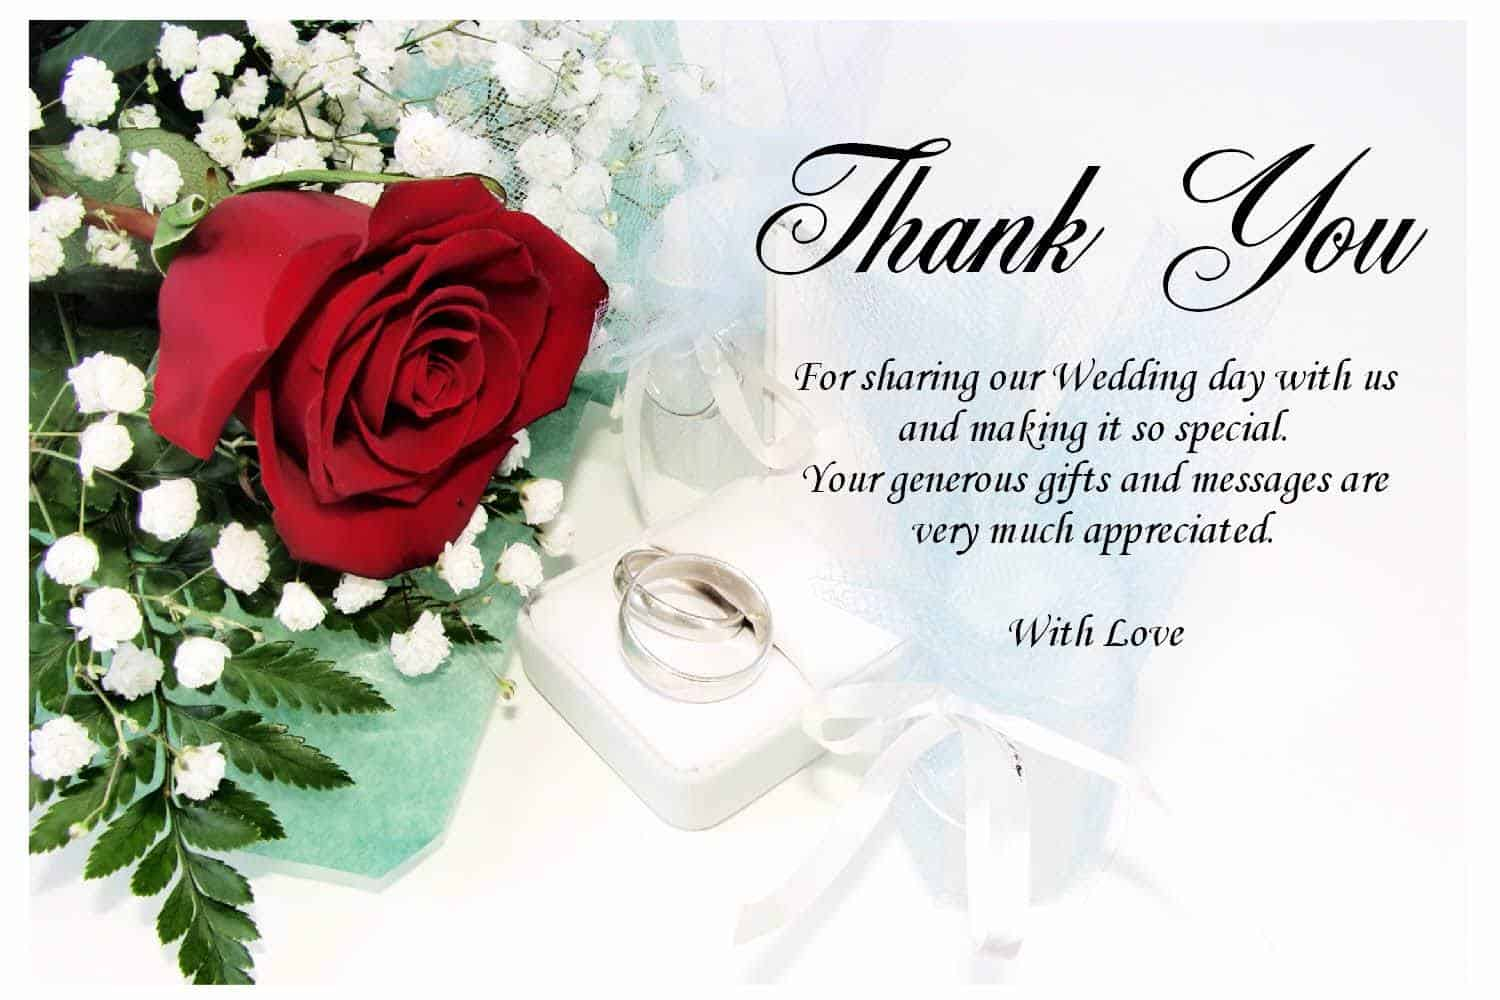 No Gift Wedding Message : Thank You Letter after Wedding Ceremony